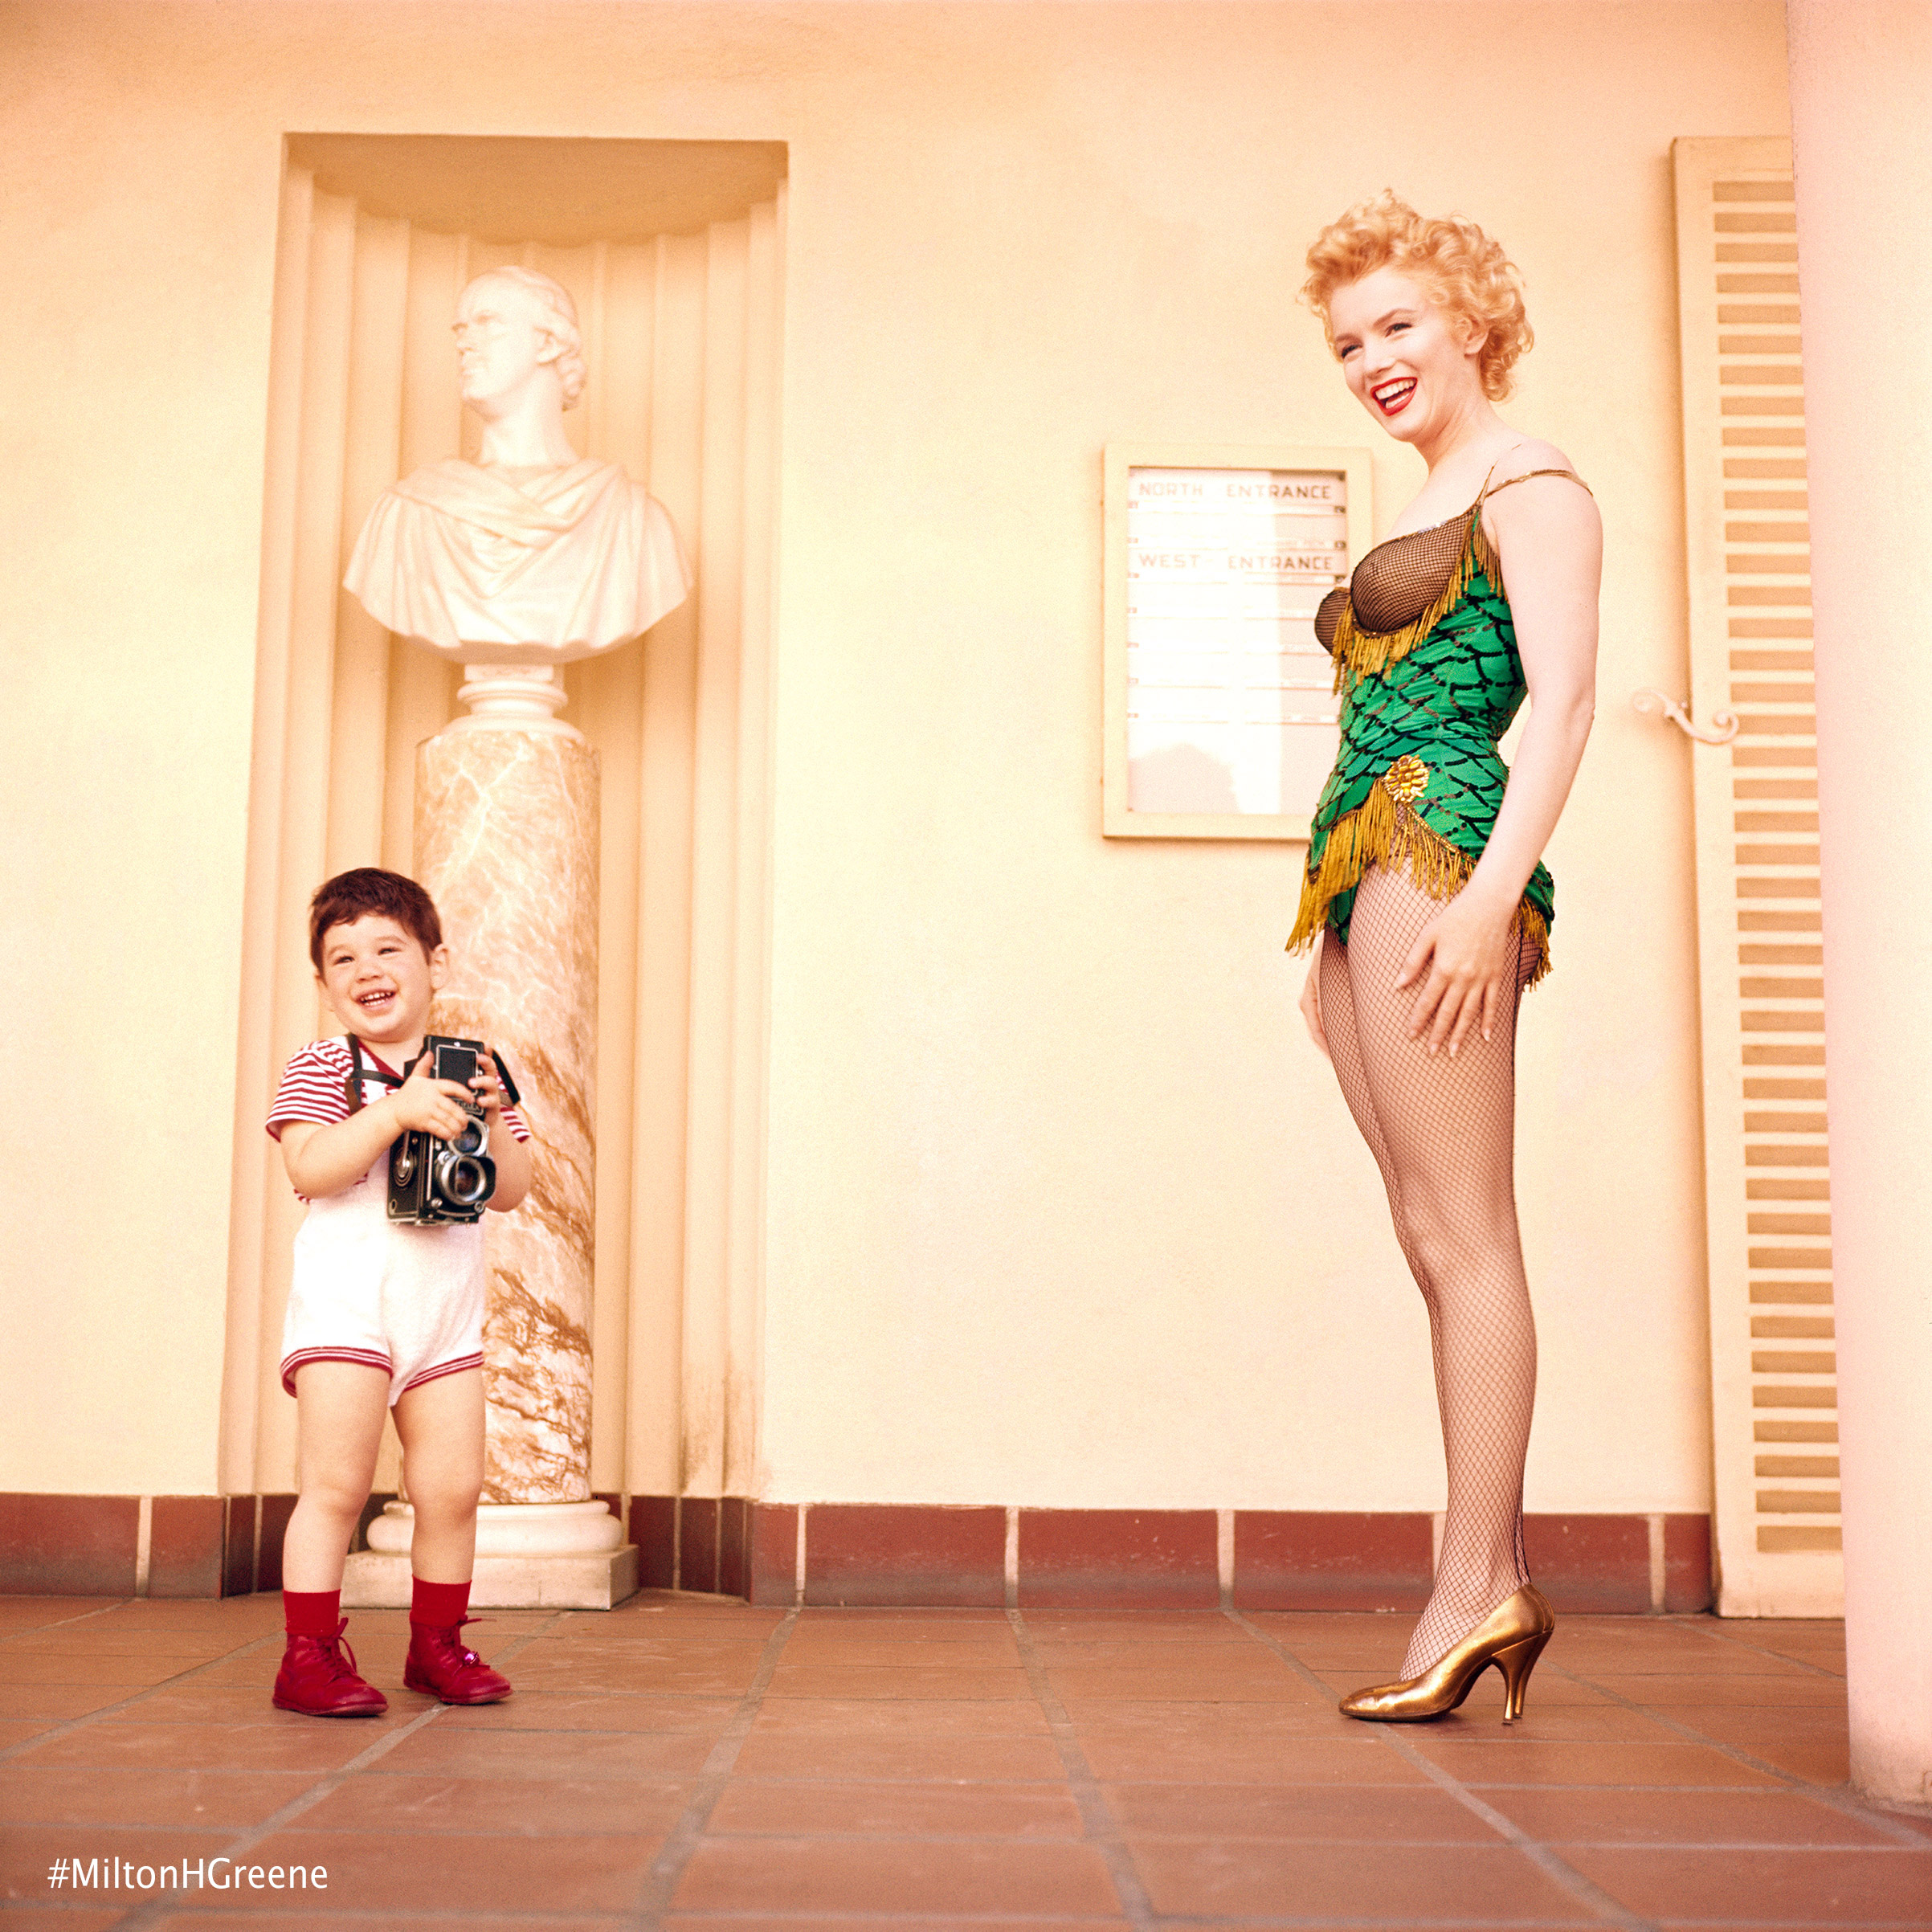 Joshua Greene with Marilyn Monroe from the Bus Stop session, 1956. Photographed by Milton H. Greene ©2017 Joshua Greene archiveimages.com